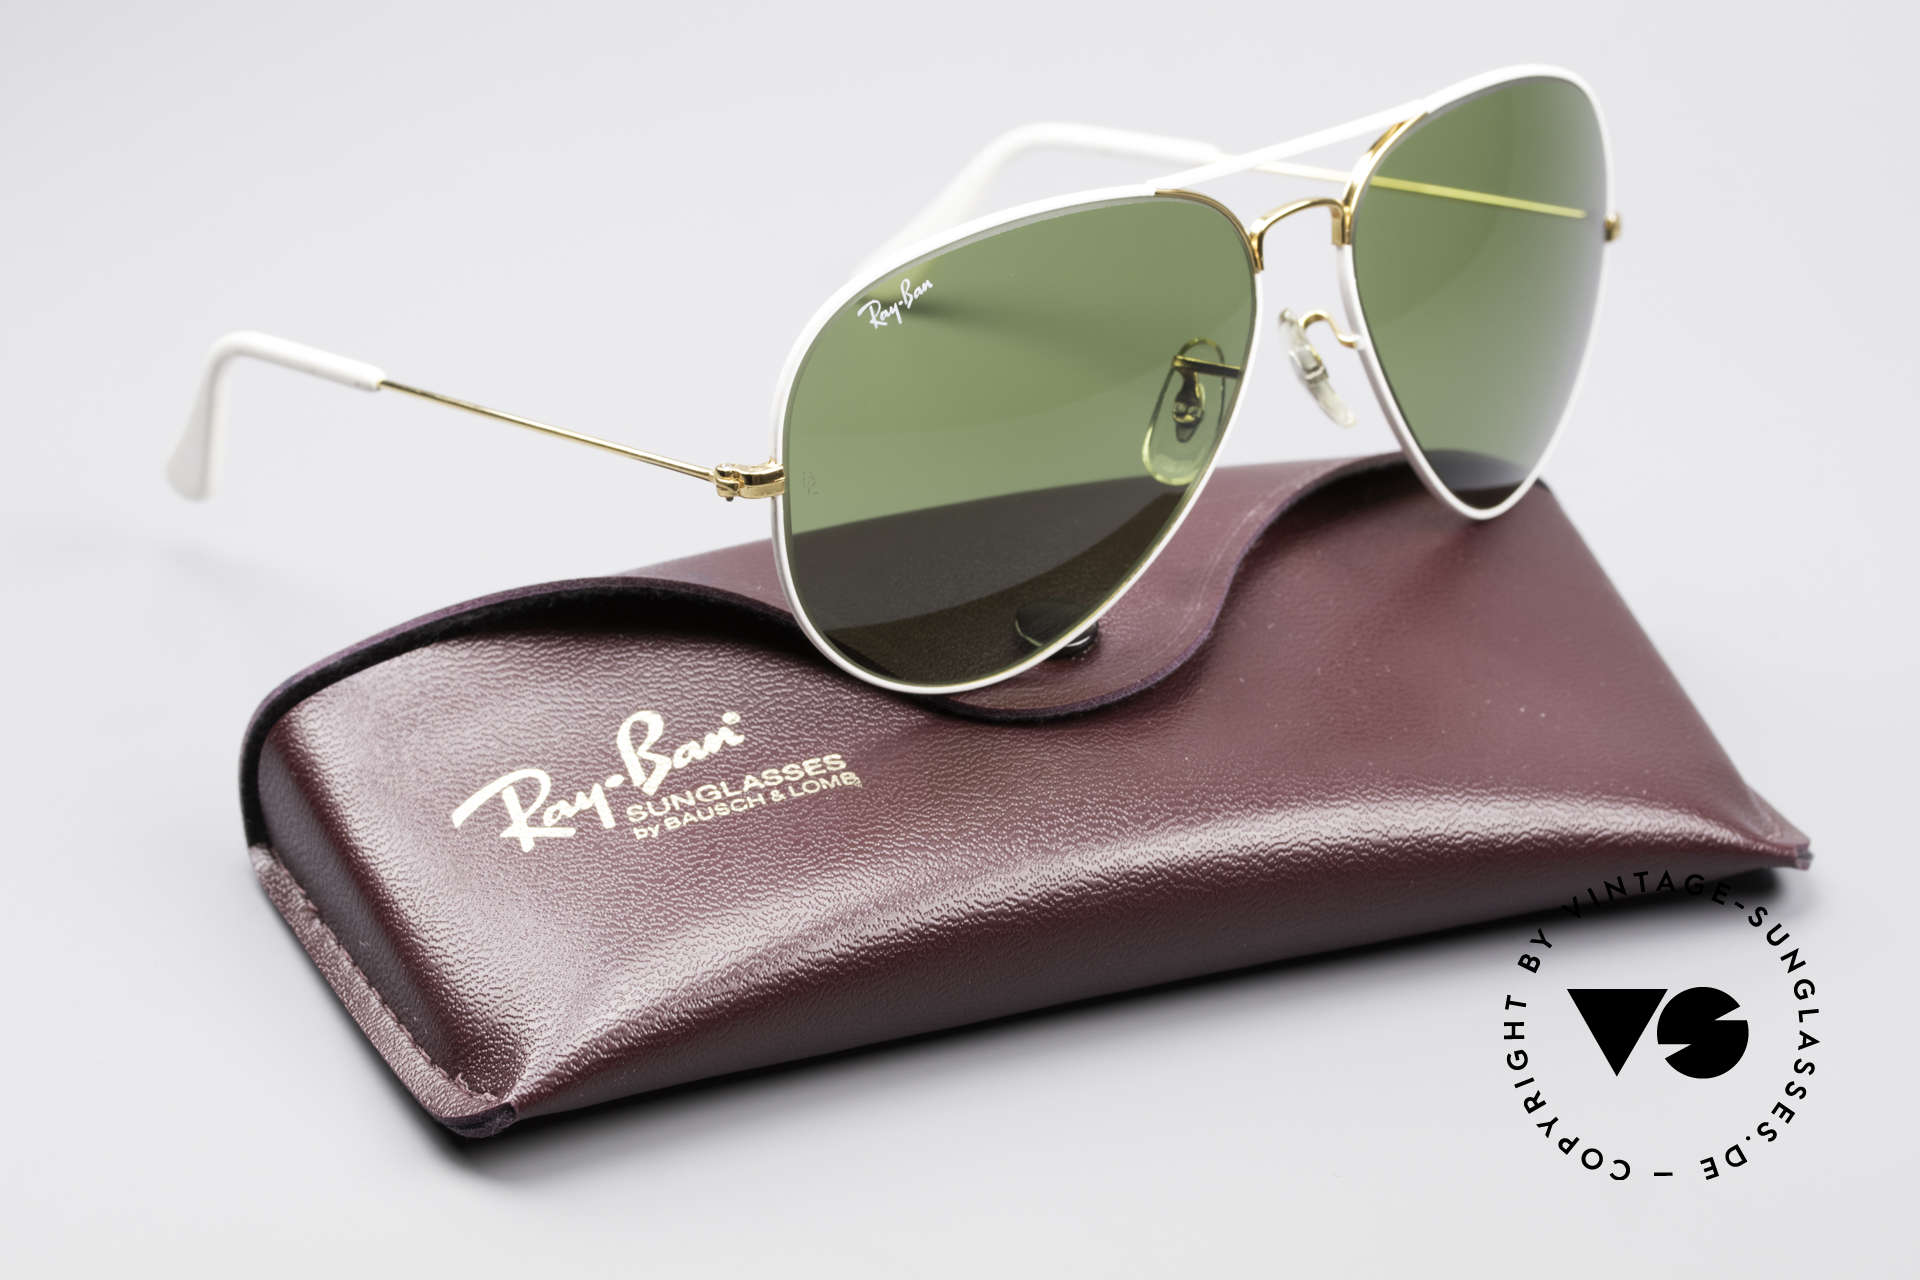 Ray Ban Large Metal II Flying Colors Limited Edition, collector's item in a brilliant quality (incl. orig. case), Made for Men